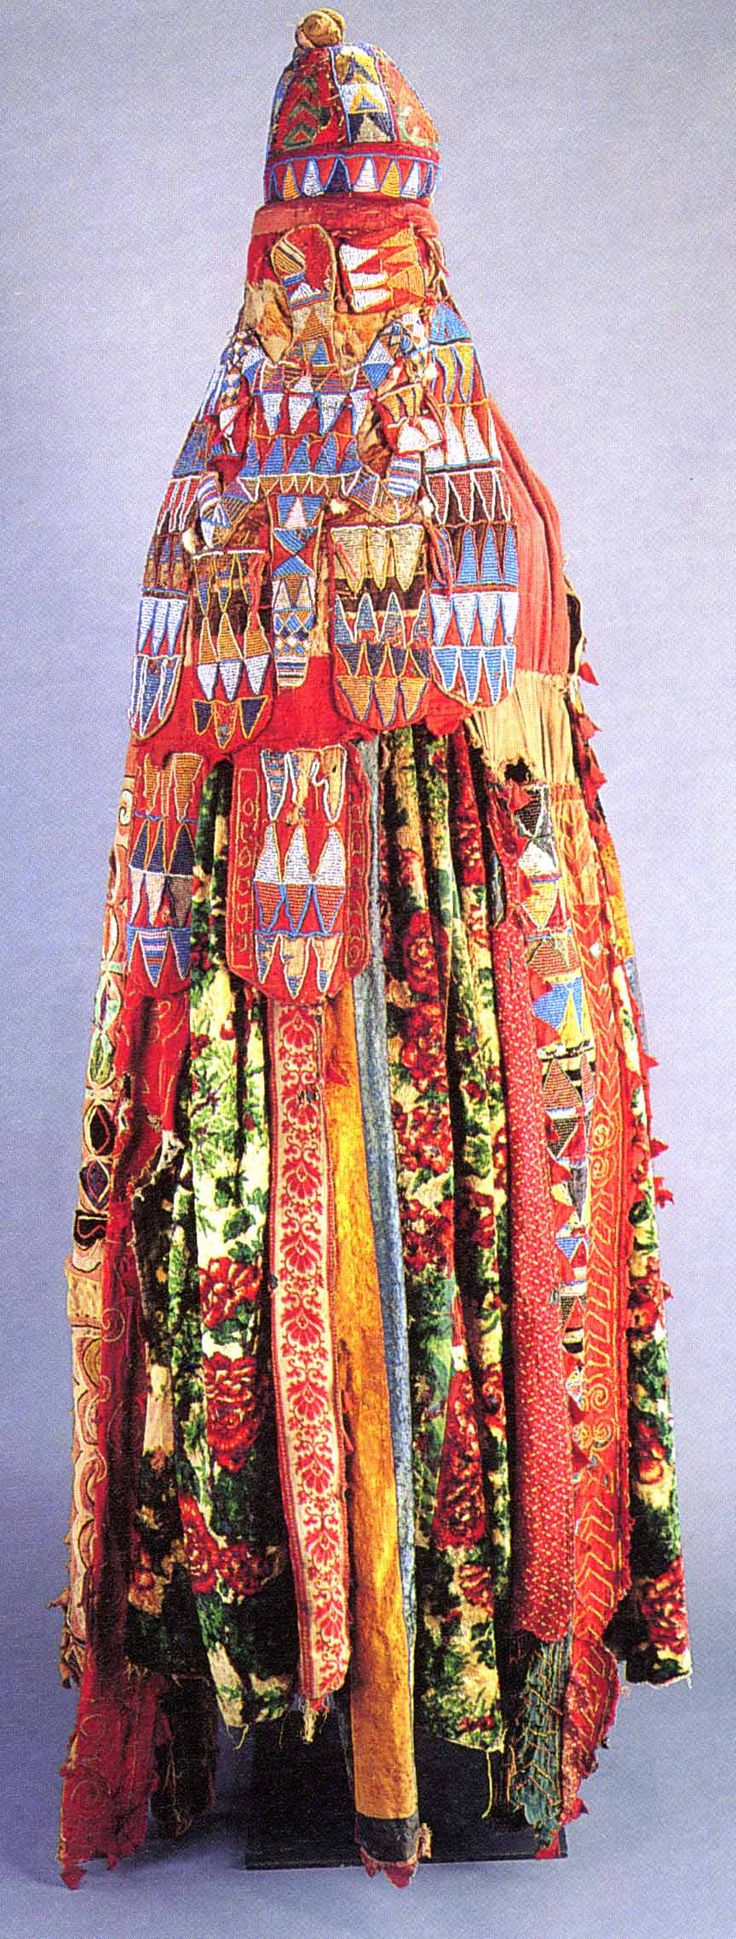 "EGUNGUN ENSEMBLE  ""Massive interlaces on beaded panels both front and back proclaim that the past, present and future are part of the infinite cycle of existence: birth, life, departure, return. They recall the whirling return of the past into the present, and simultaneously, the  spiraling outward departure on new life journeys into the future."""